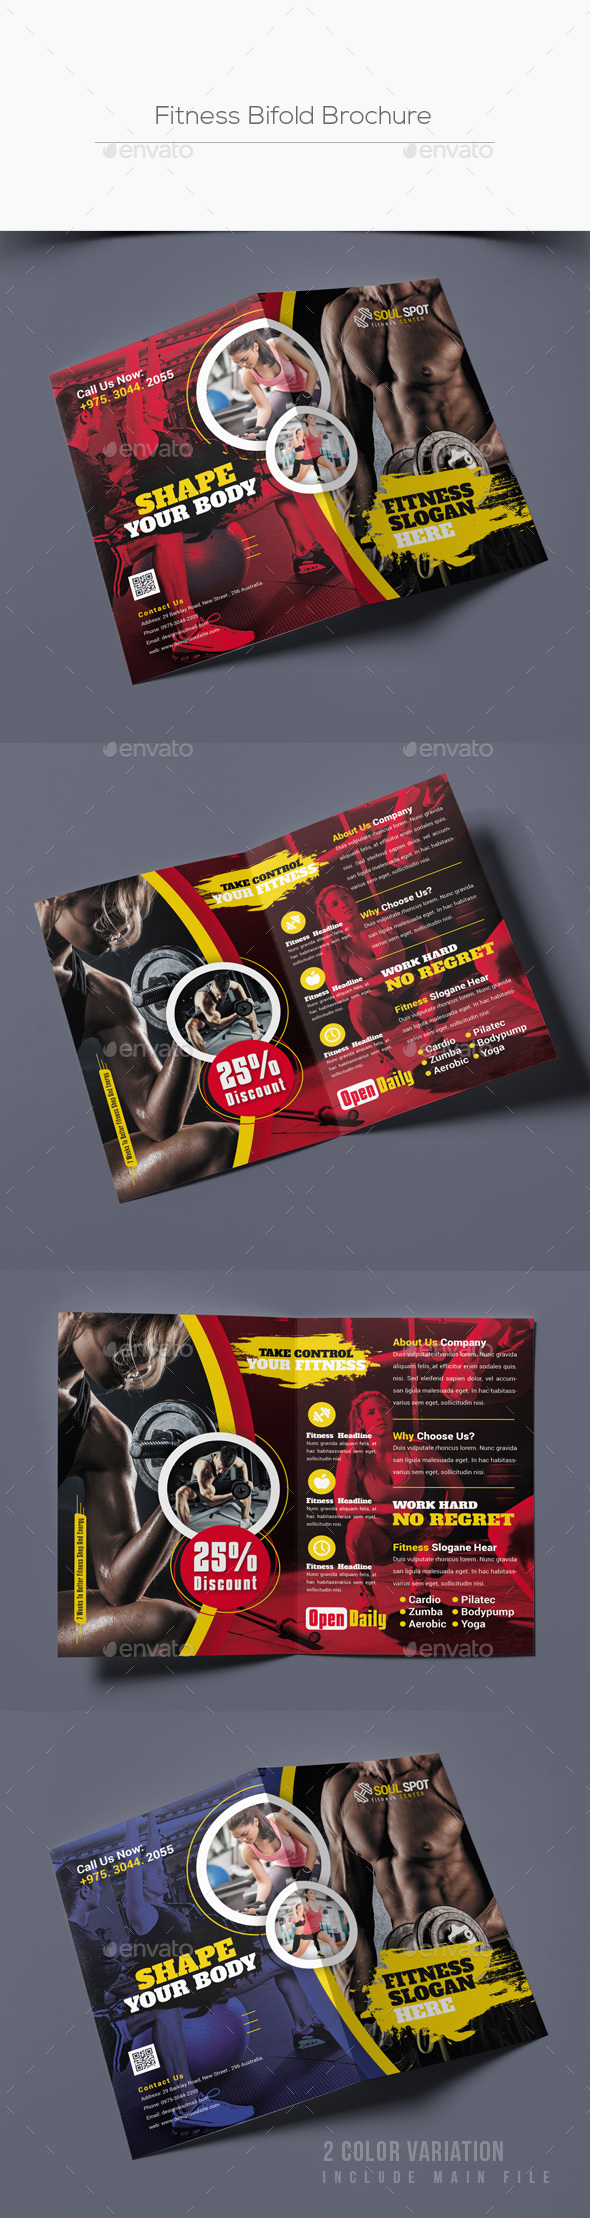 GraphicRiver Fitness Bifold Brochure 21098290